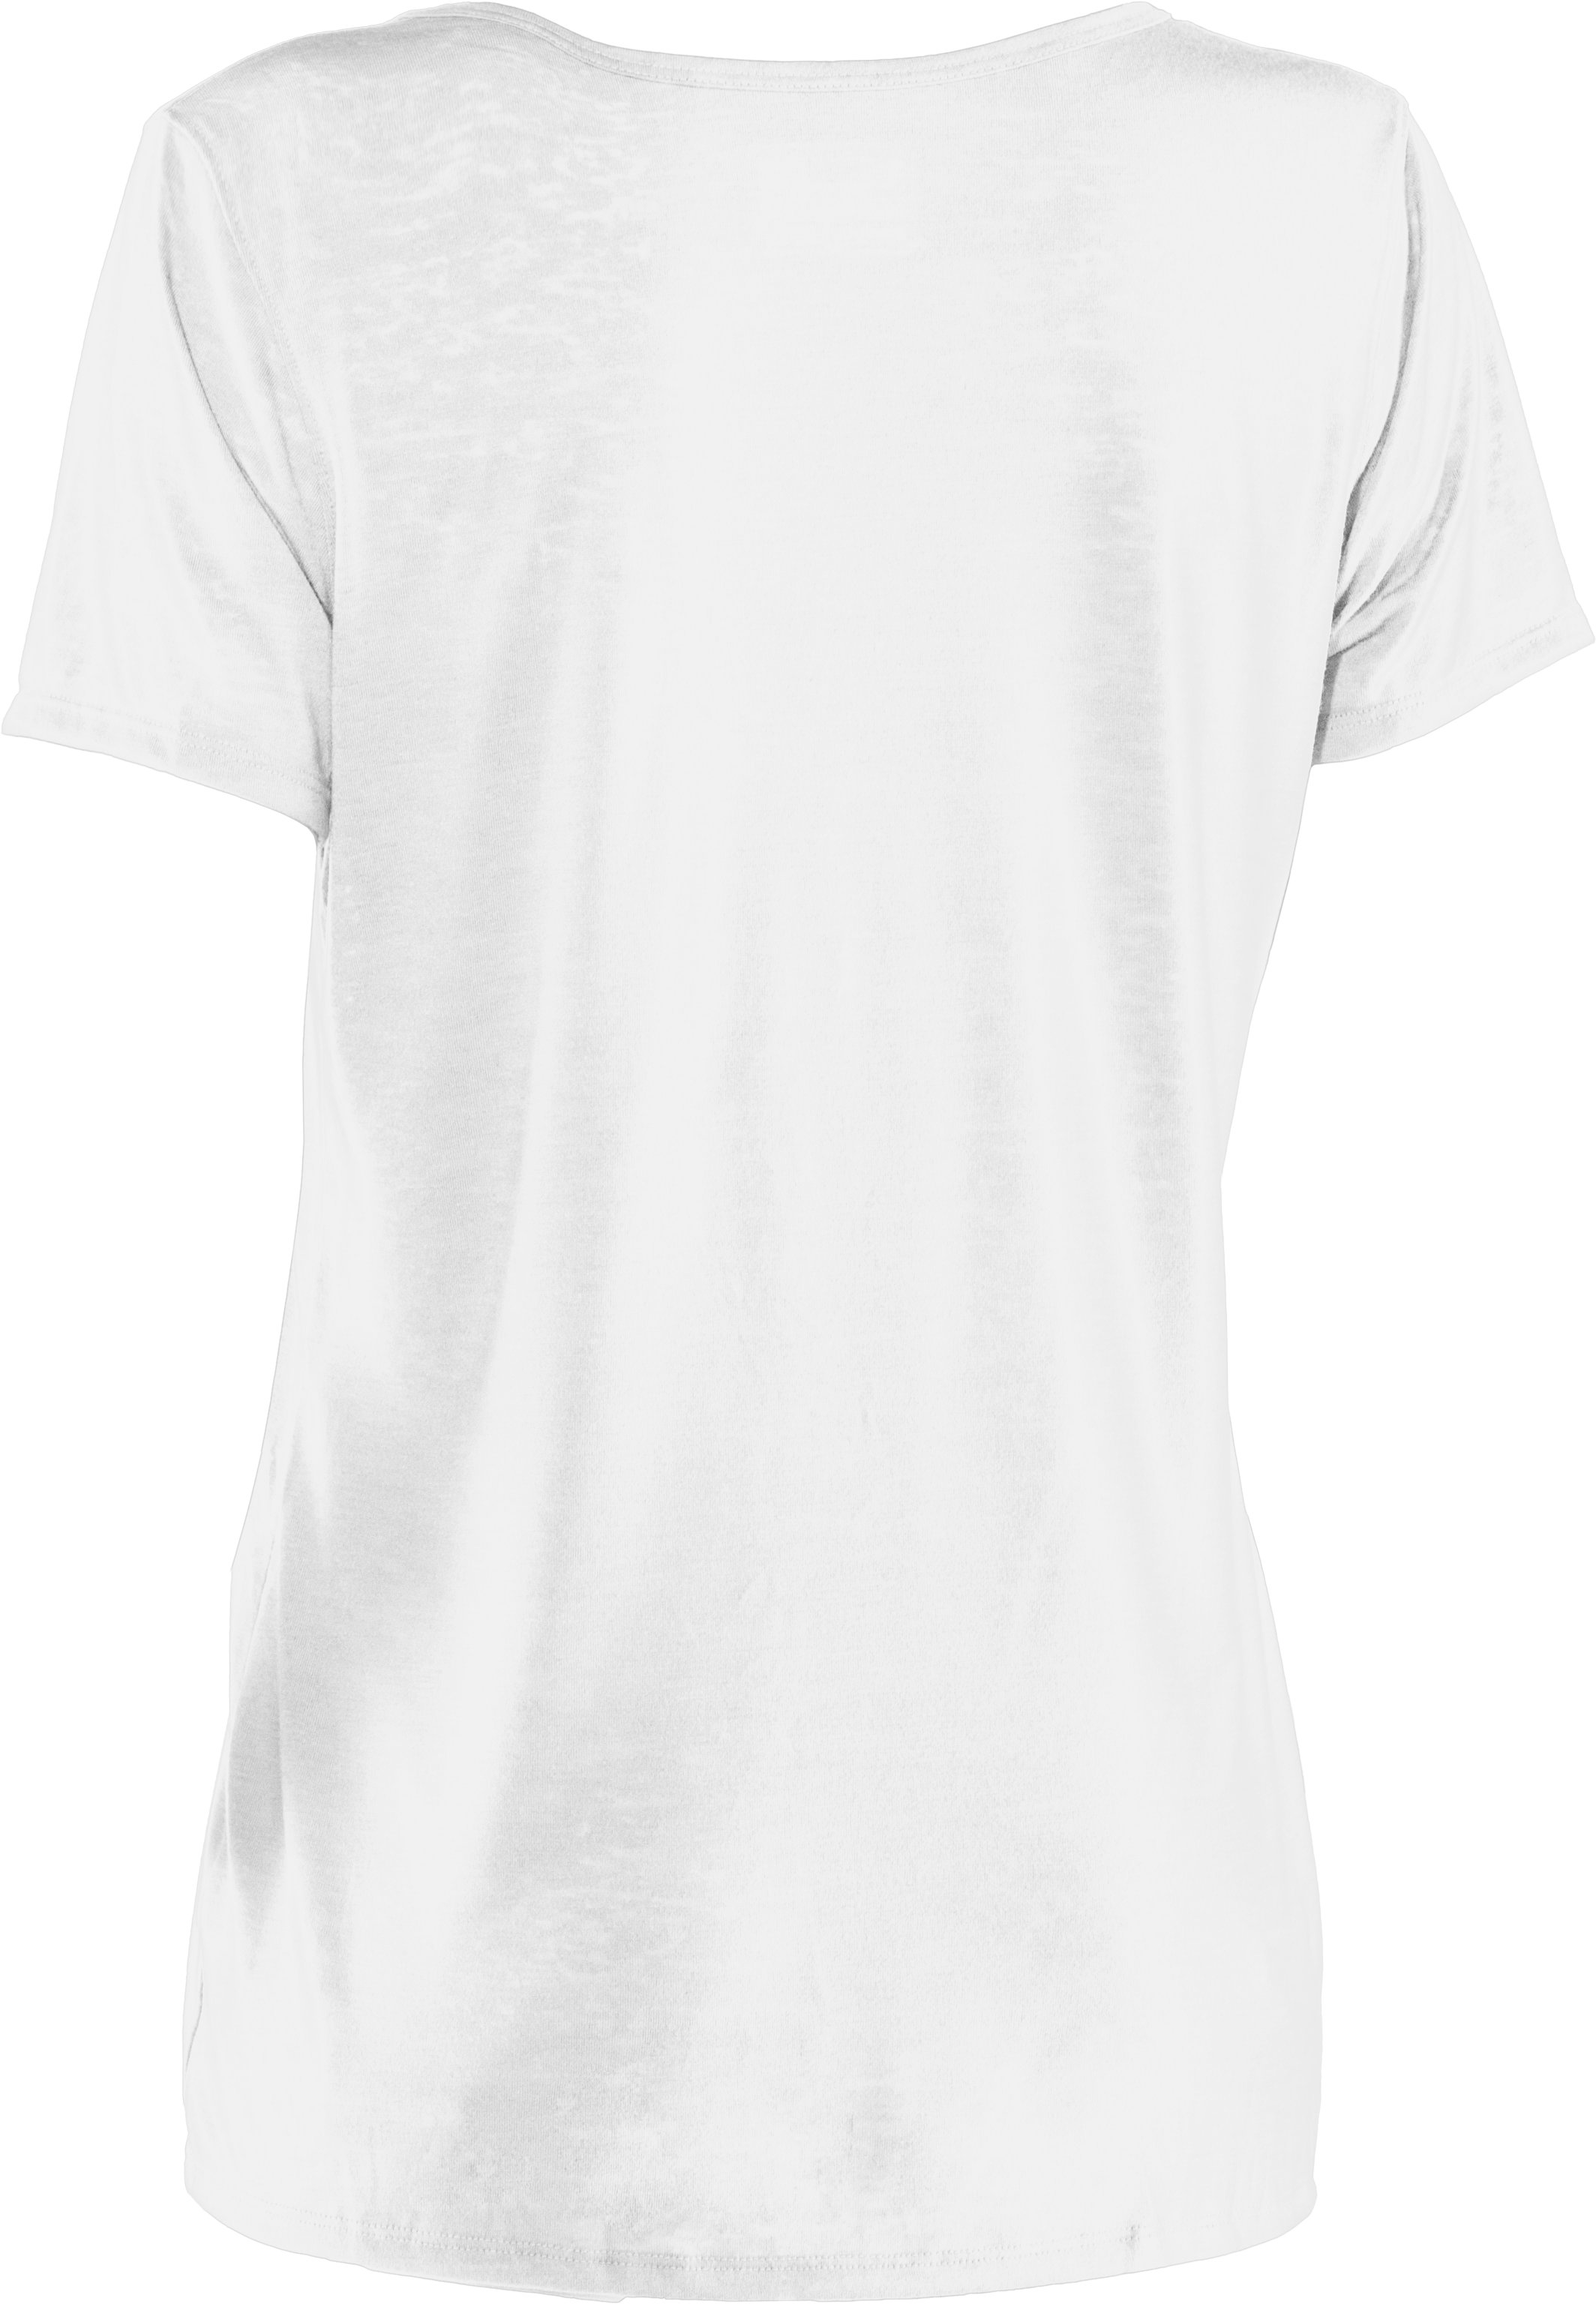 Women's Achieve Burnout T-Shirt, White, undefined